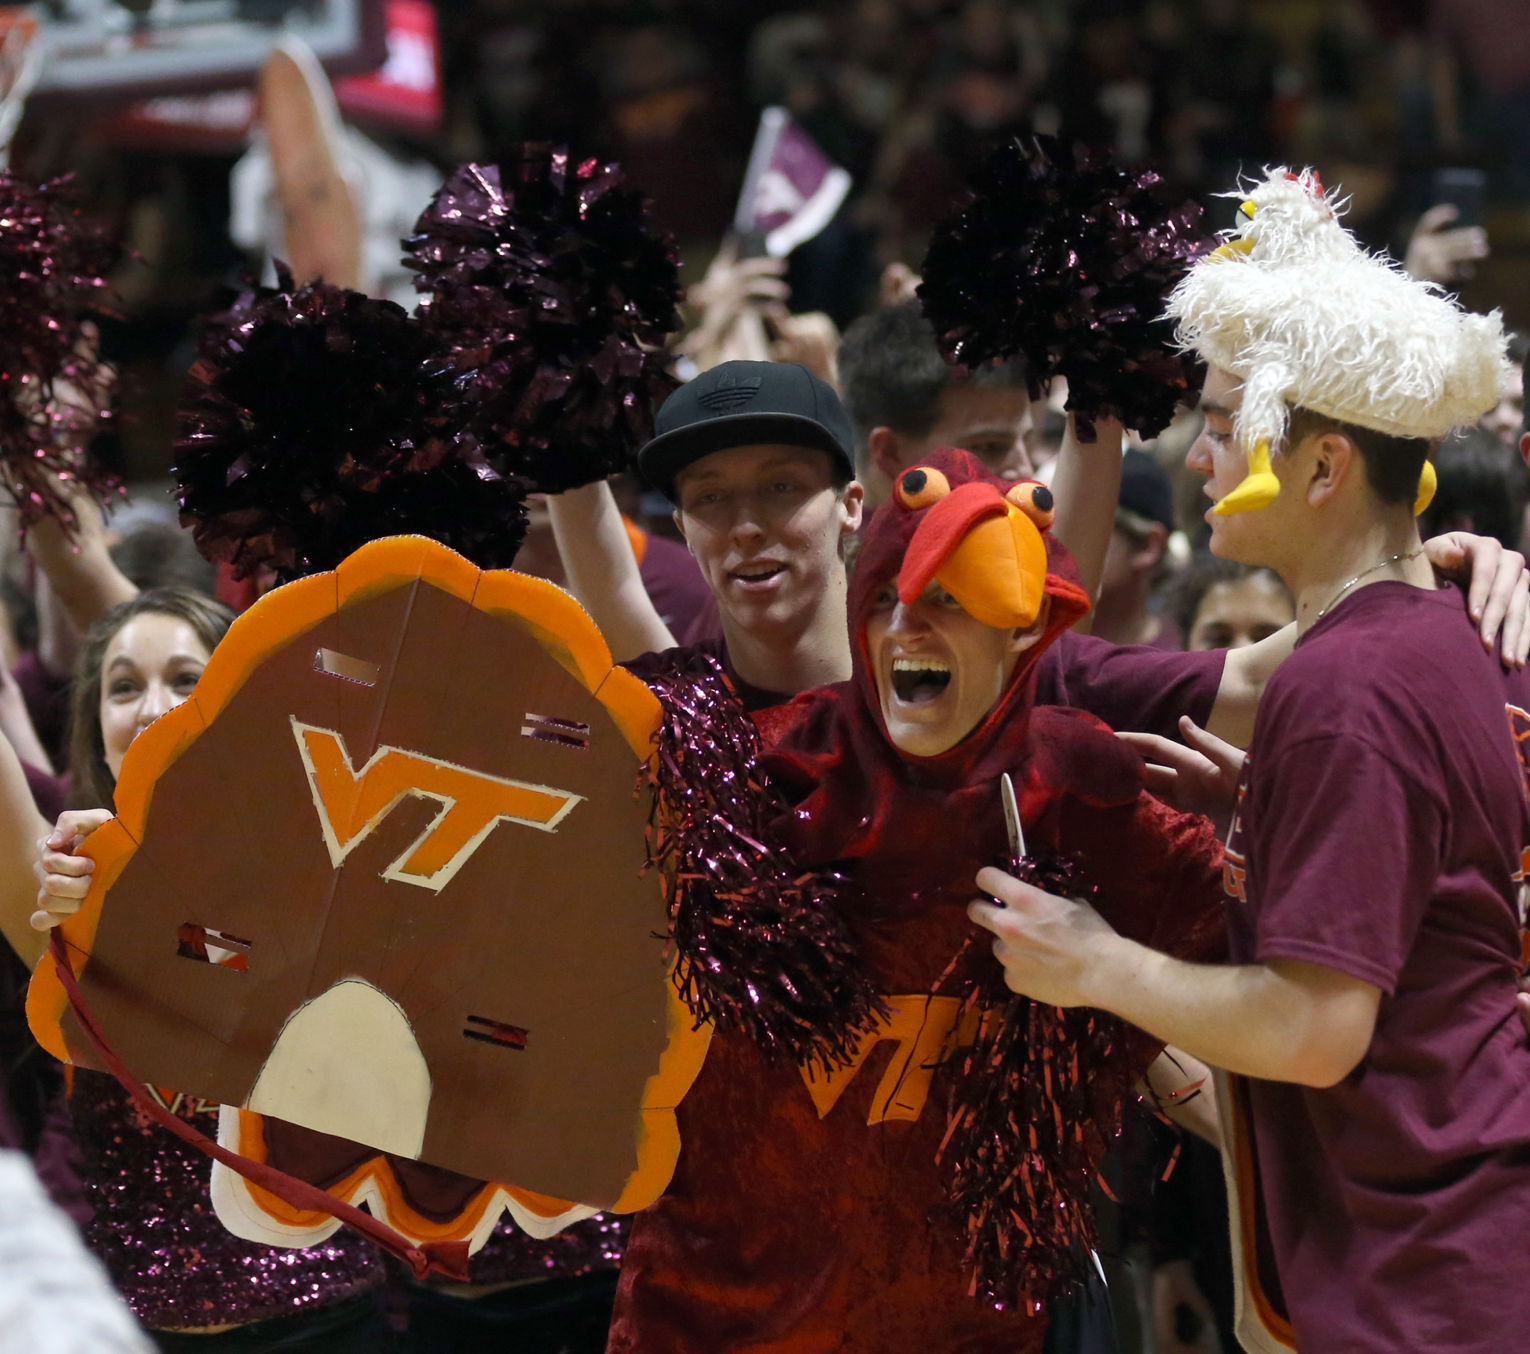 After huge win against Virginia, Virginia Tech takes on bad injury news